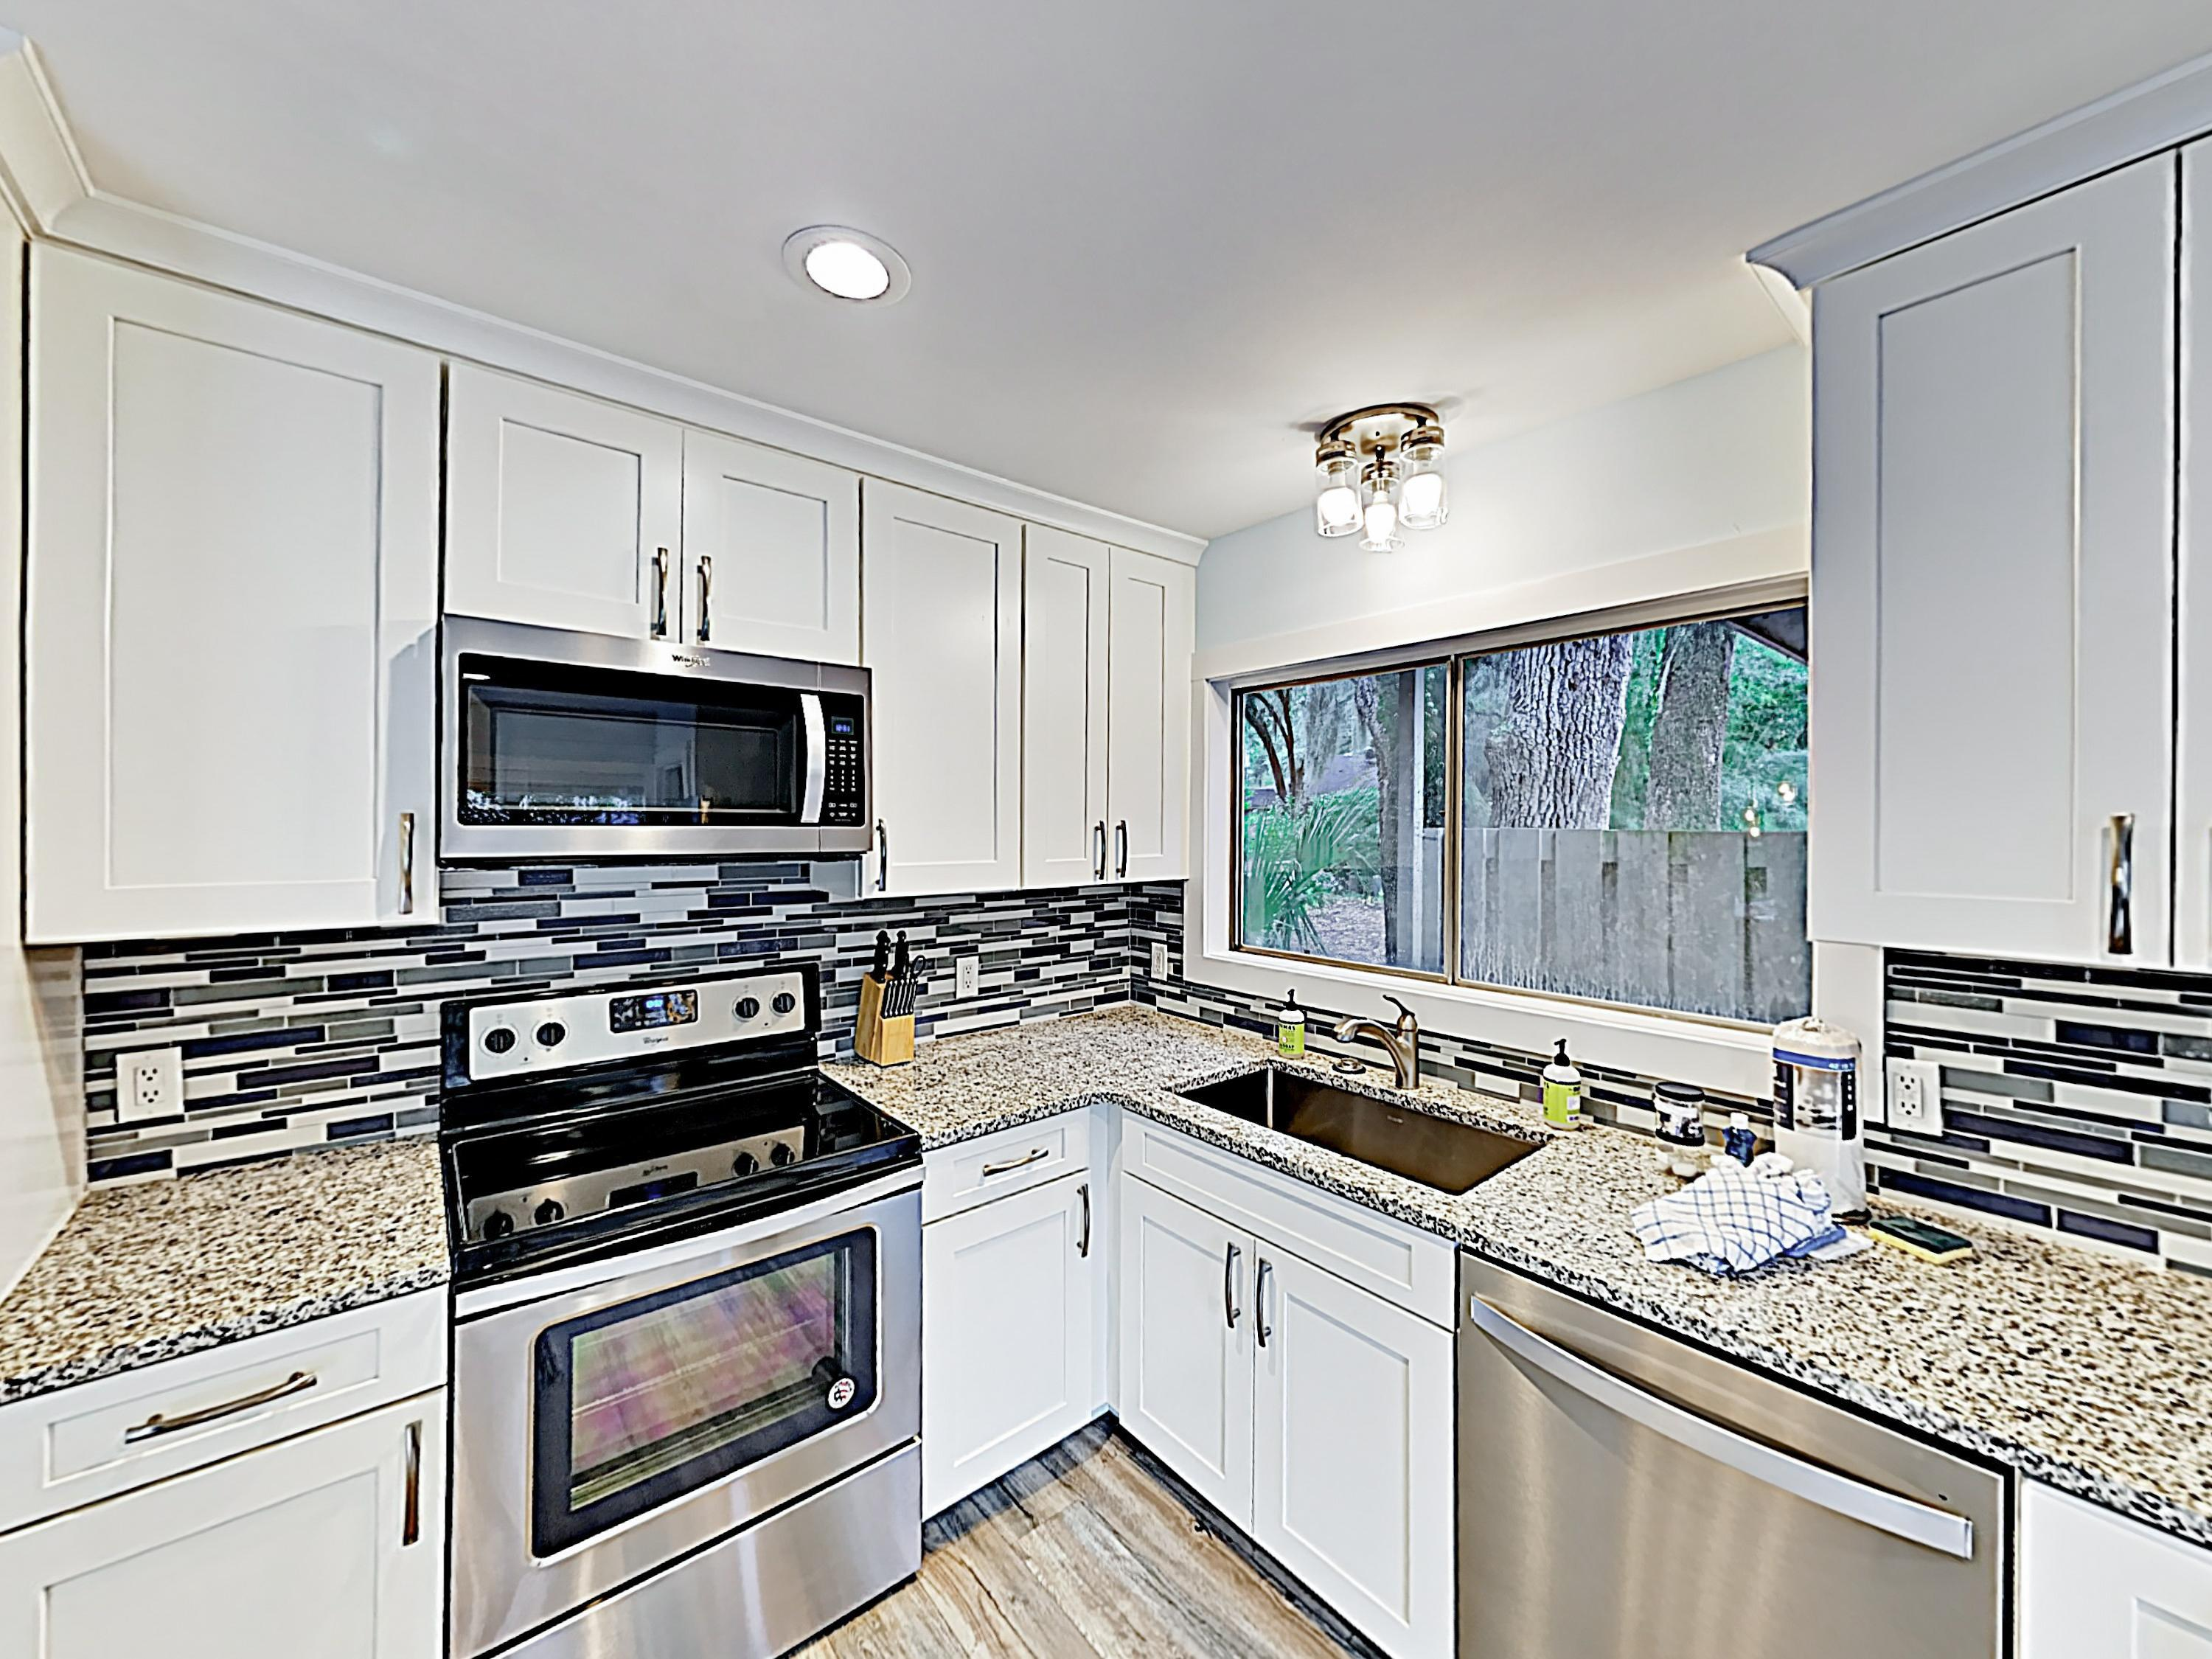 Whip up delicious meals in the kitchen, equipped with granite countertops and a full suite of appliances.